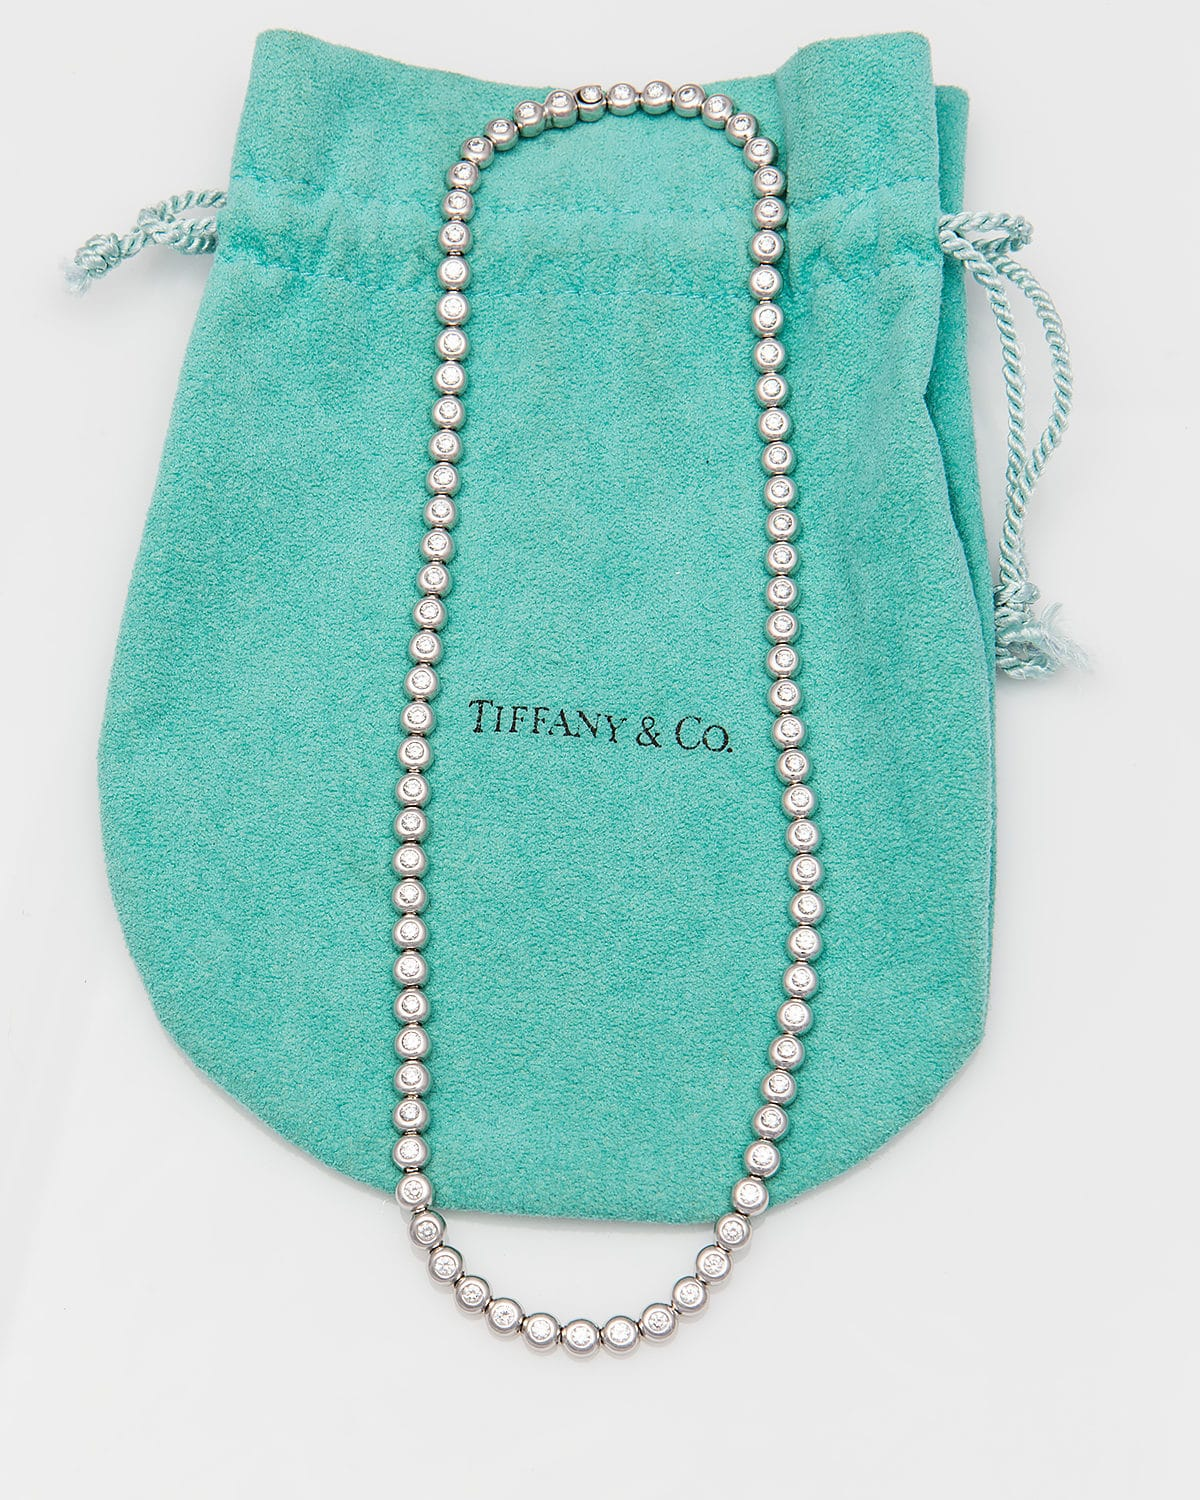 Tiffany & Co. collectible jewelry